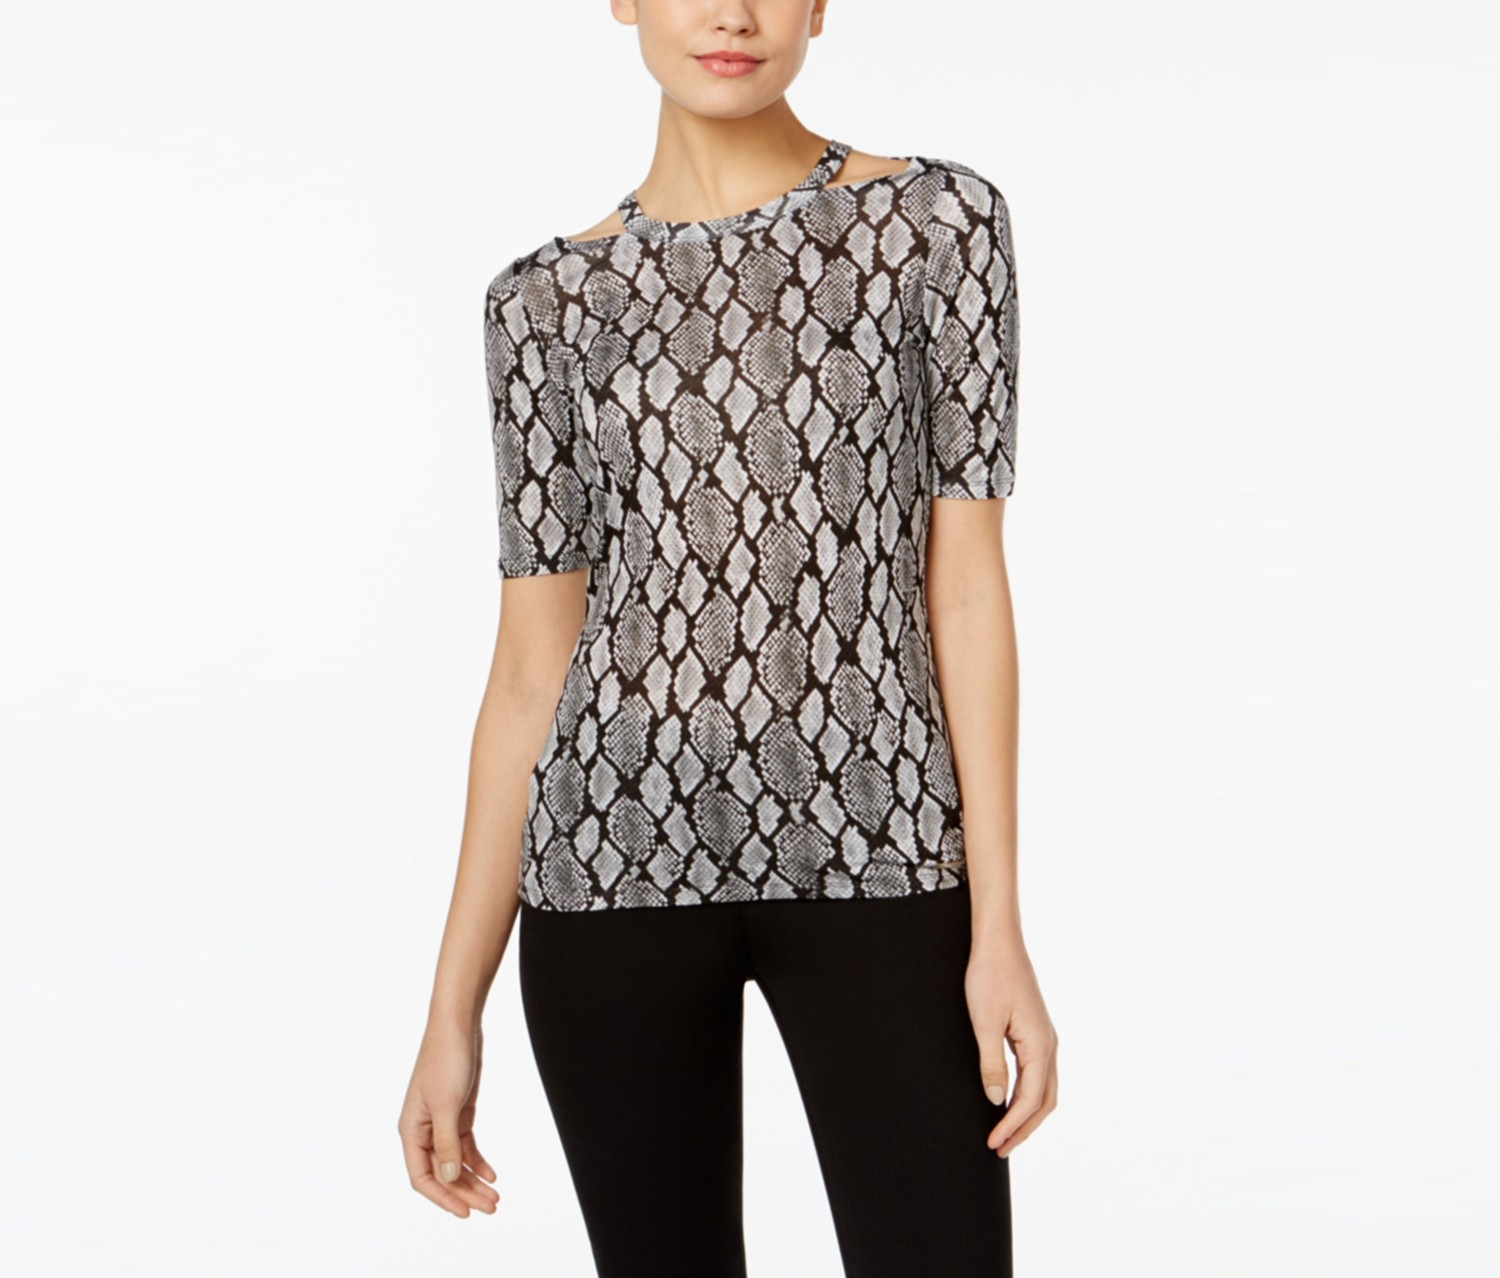 Michael Kors Cutout Printed Top, Black